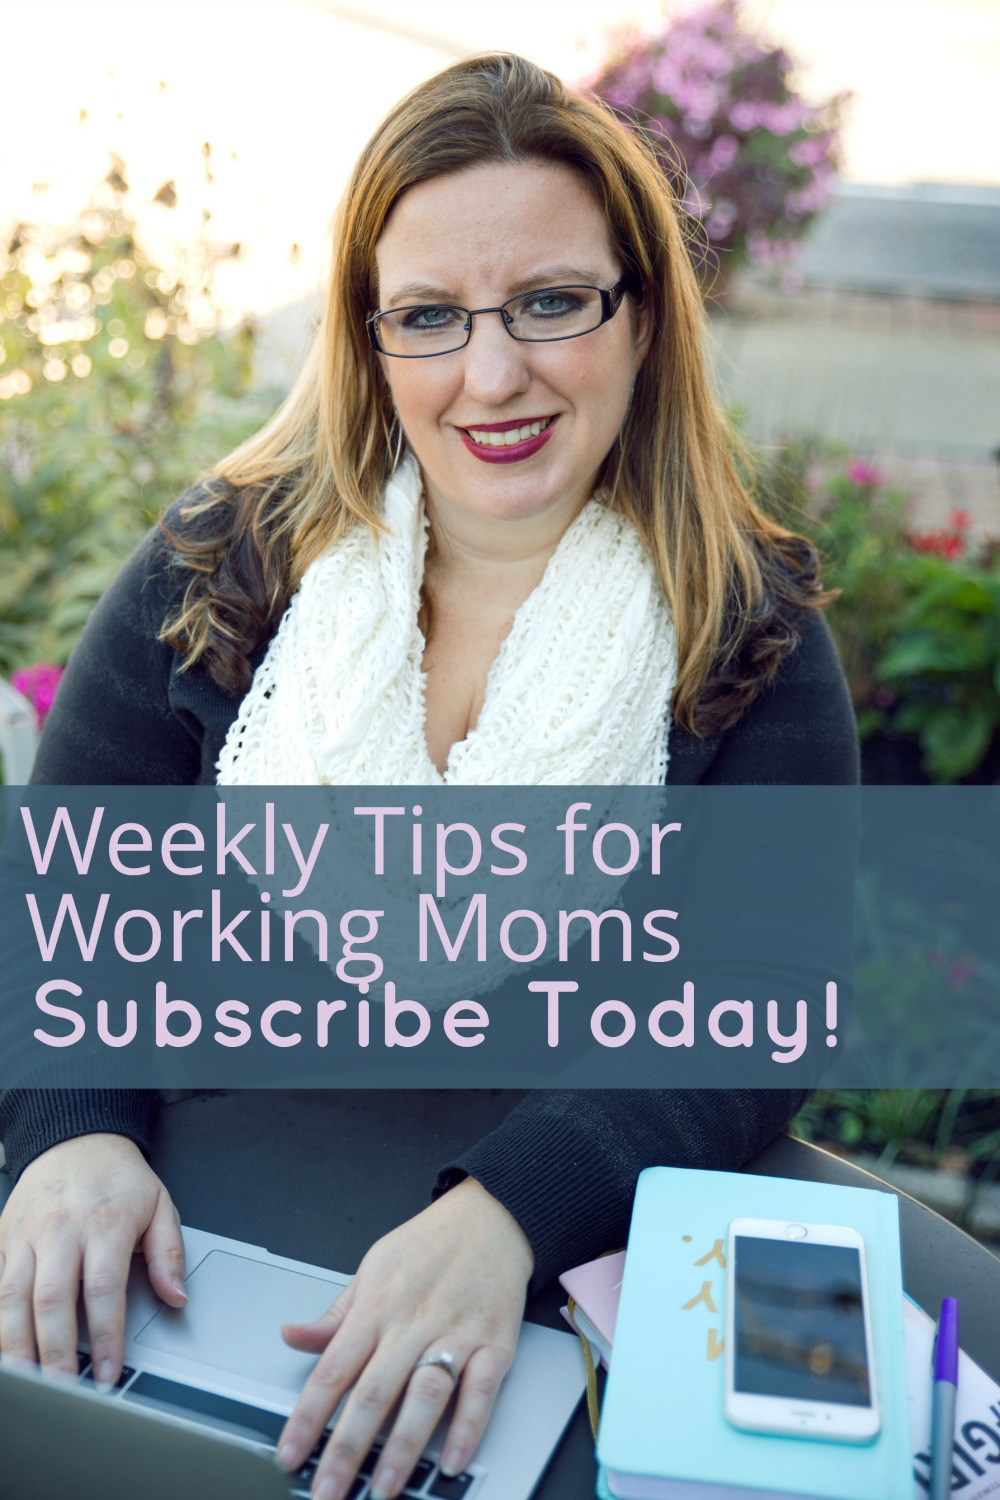 Weekly tips for working moms, subscribe to the Redefining Mom Newsletter today!